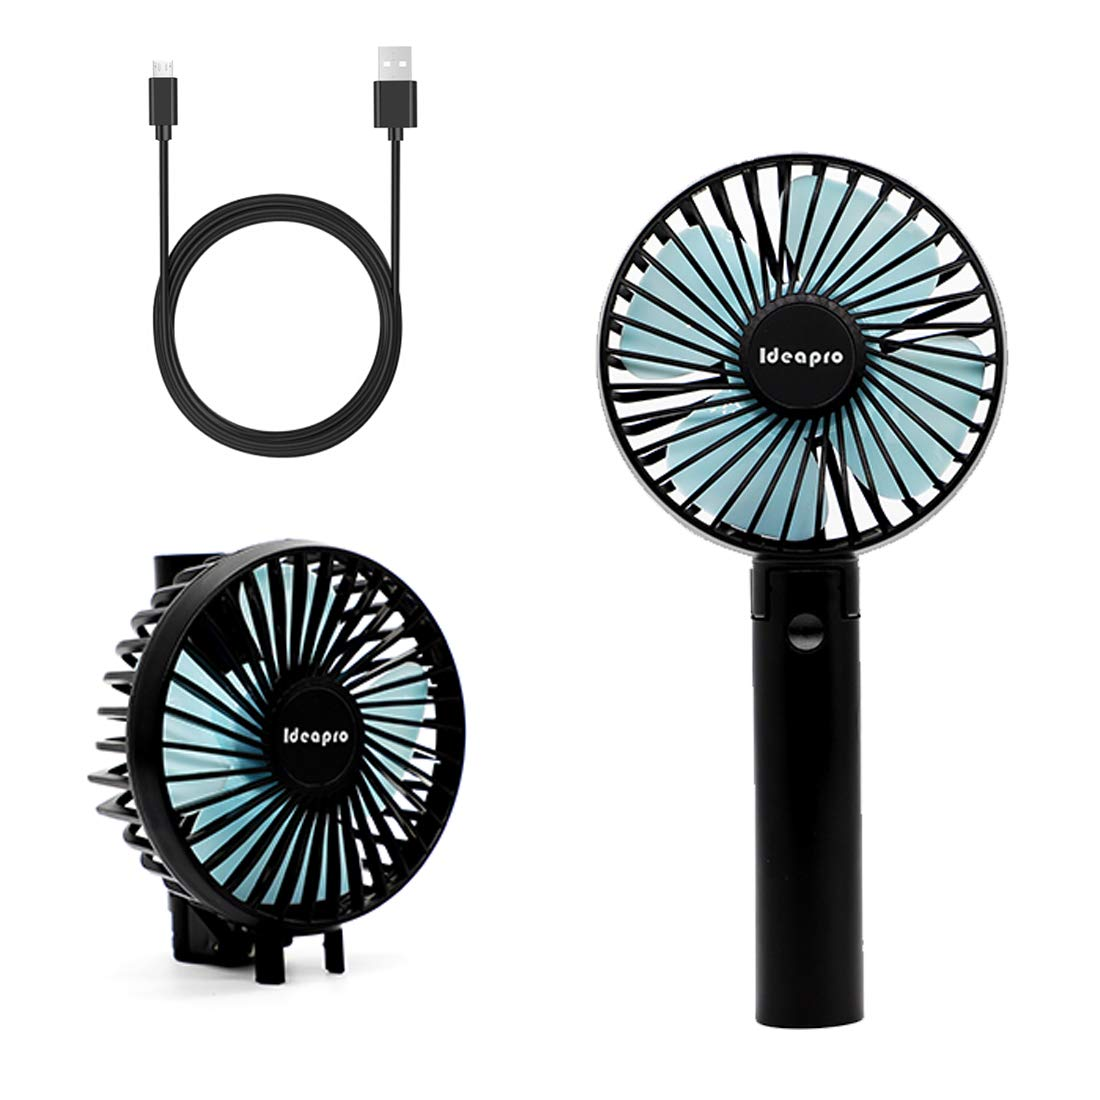 Mini Handheld Fan, idearpro Personal Portable Desk Stroller Table Fan with USB Rechargeable Battery Operated Cooling Folding Electric Fan for Office Room Outdoor Household Traveling